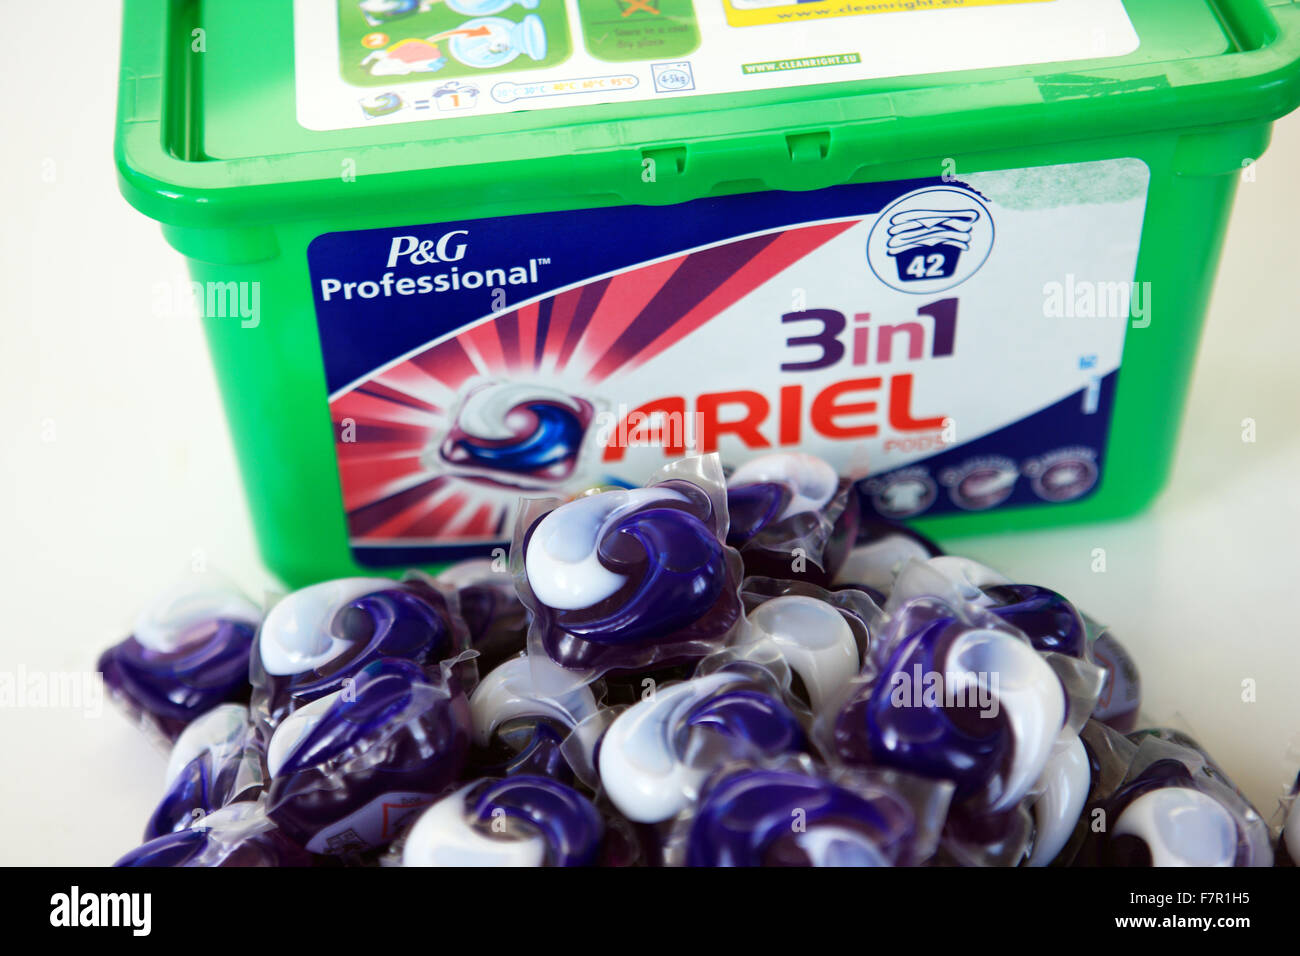 ariel laundry detergent Here's a quick quiz: if you use procter & gamble's ariel usa laundry detergent, should you use 1/2 cup, 1/4 cup or 1/5 cup of detergent for a medium-size load.